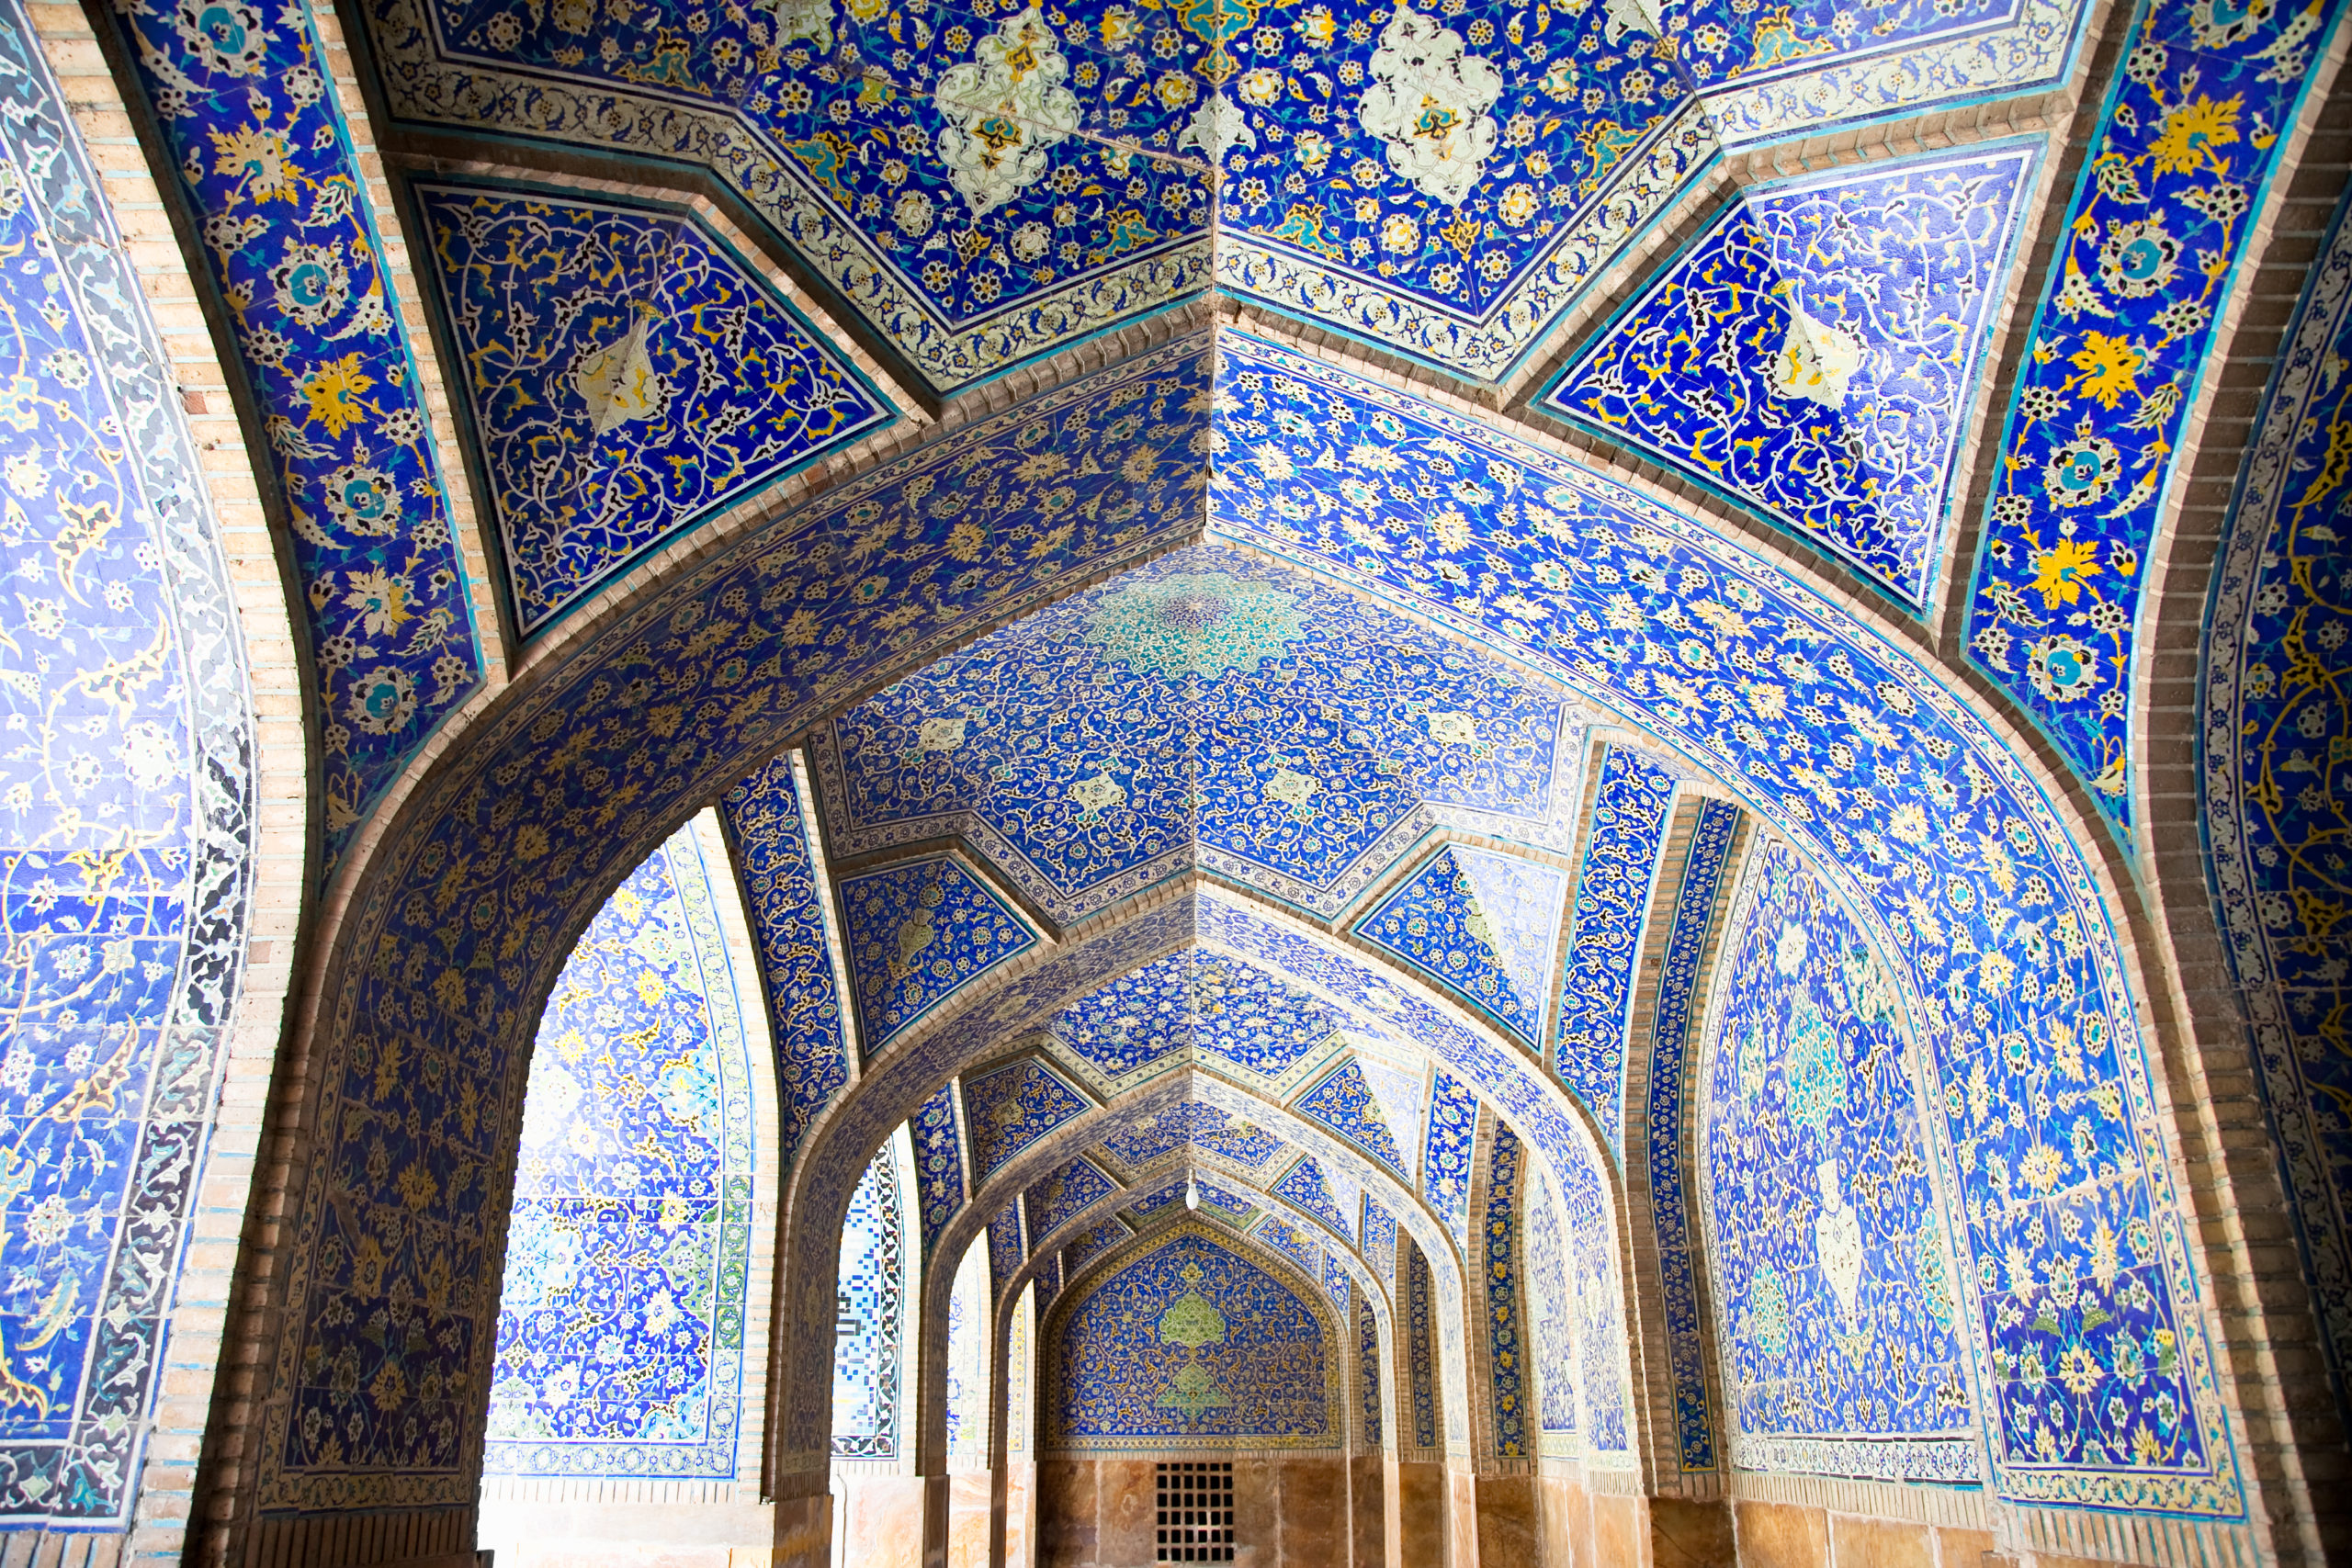 Islamic art has notable achievements in ceramics. Find out why this Islamic art has endured for years in this article on Middle Eastern ceramics.